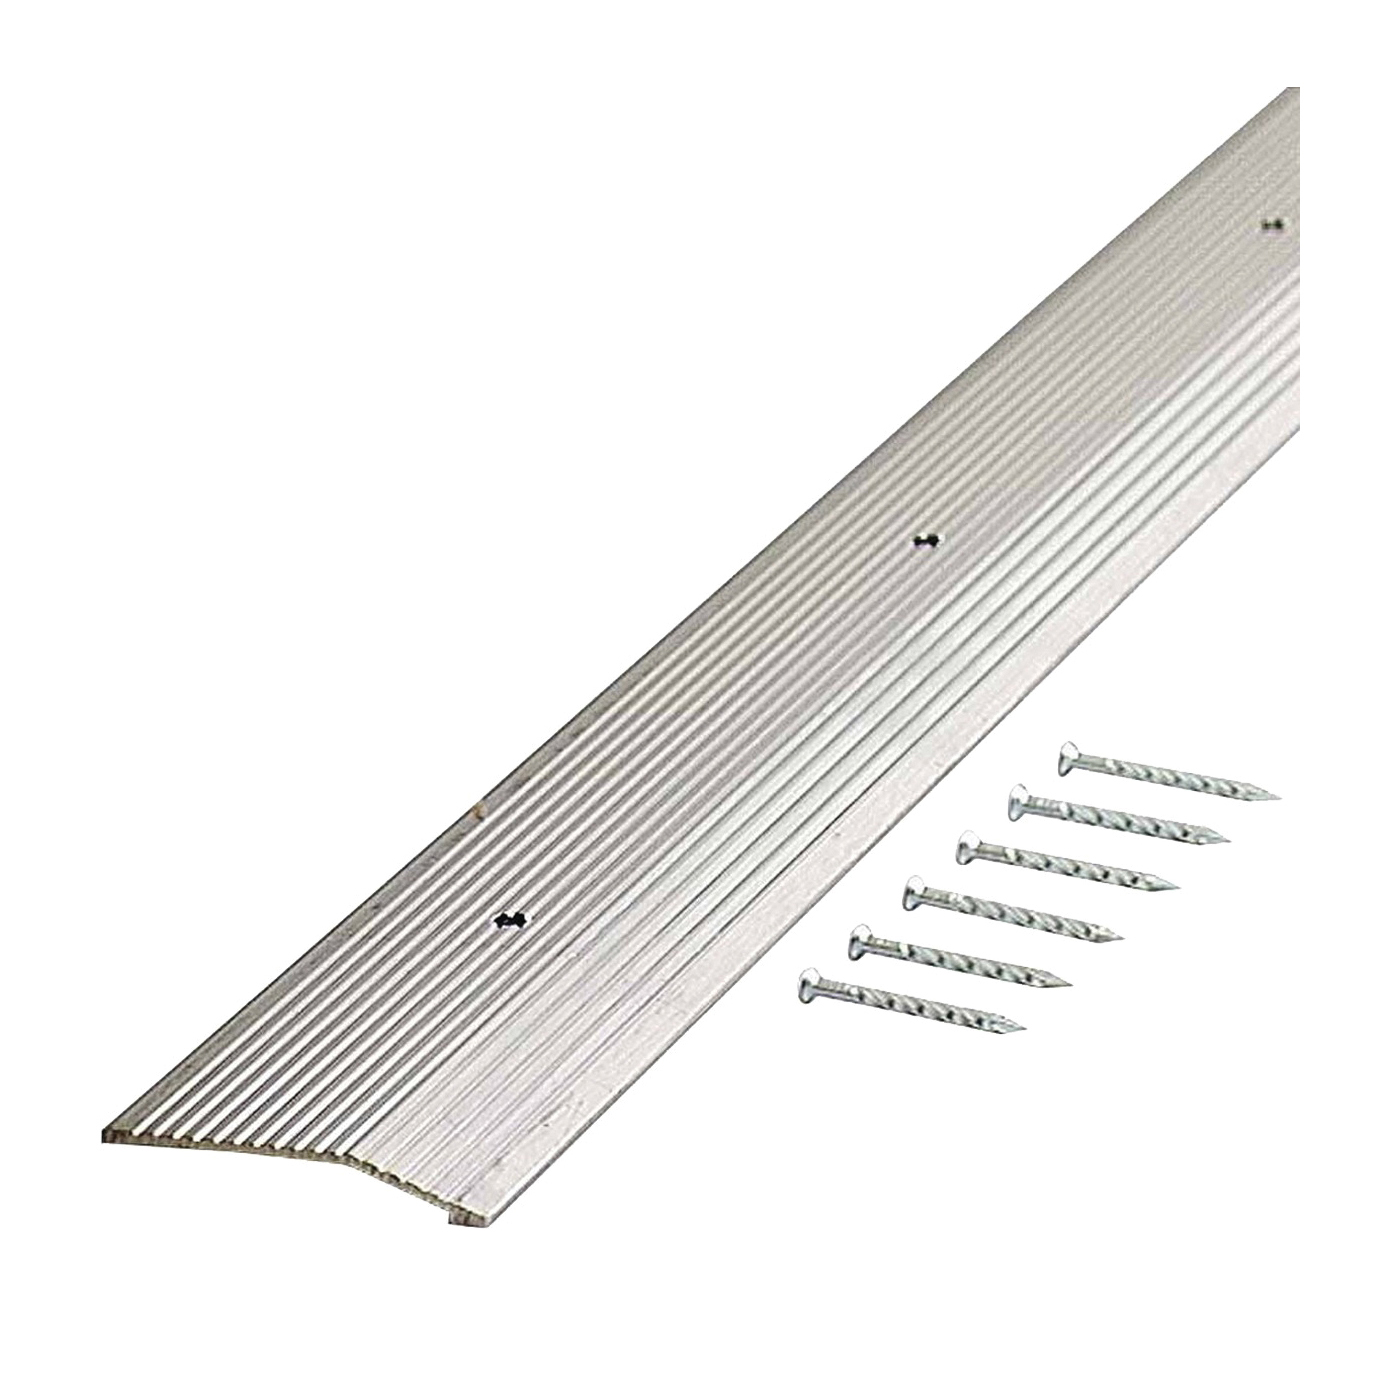 Picture of M-D 78220 Carpet Trim, 72 in L, 2 in W, Fluted Surface, Aluminum, Silver